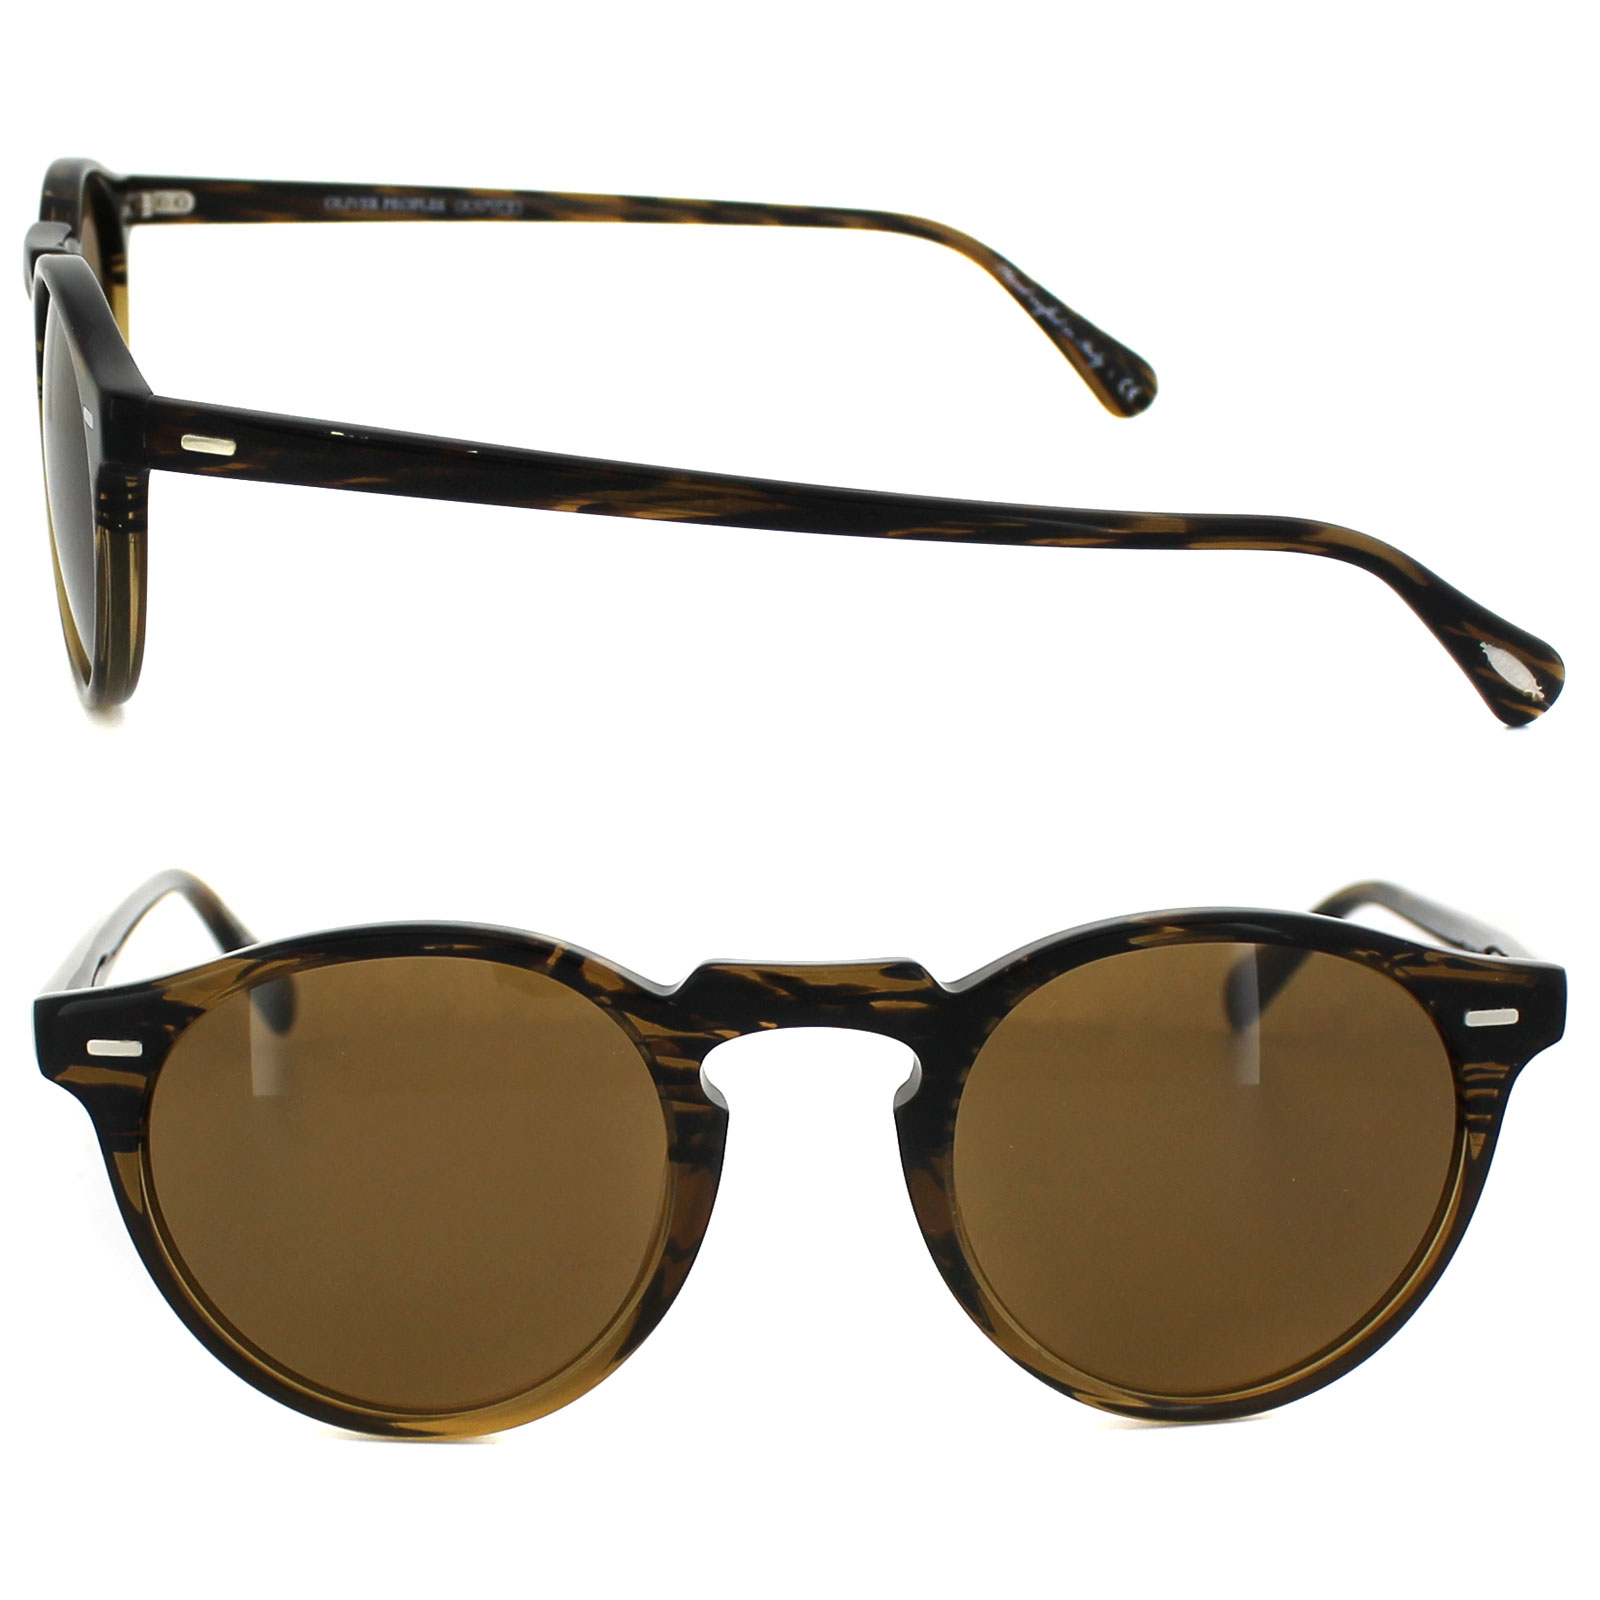 Cheap Oliver Peoples Gregory Peck 5217 Sunglasses